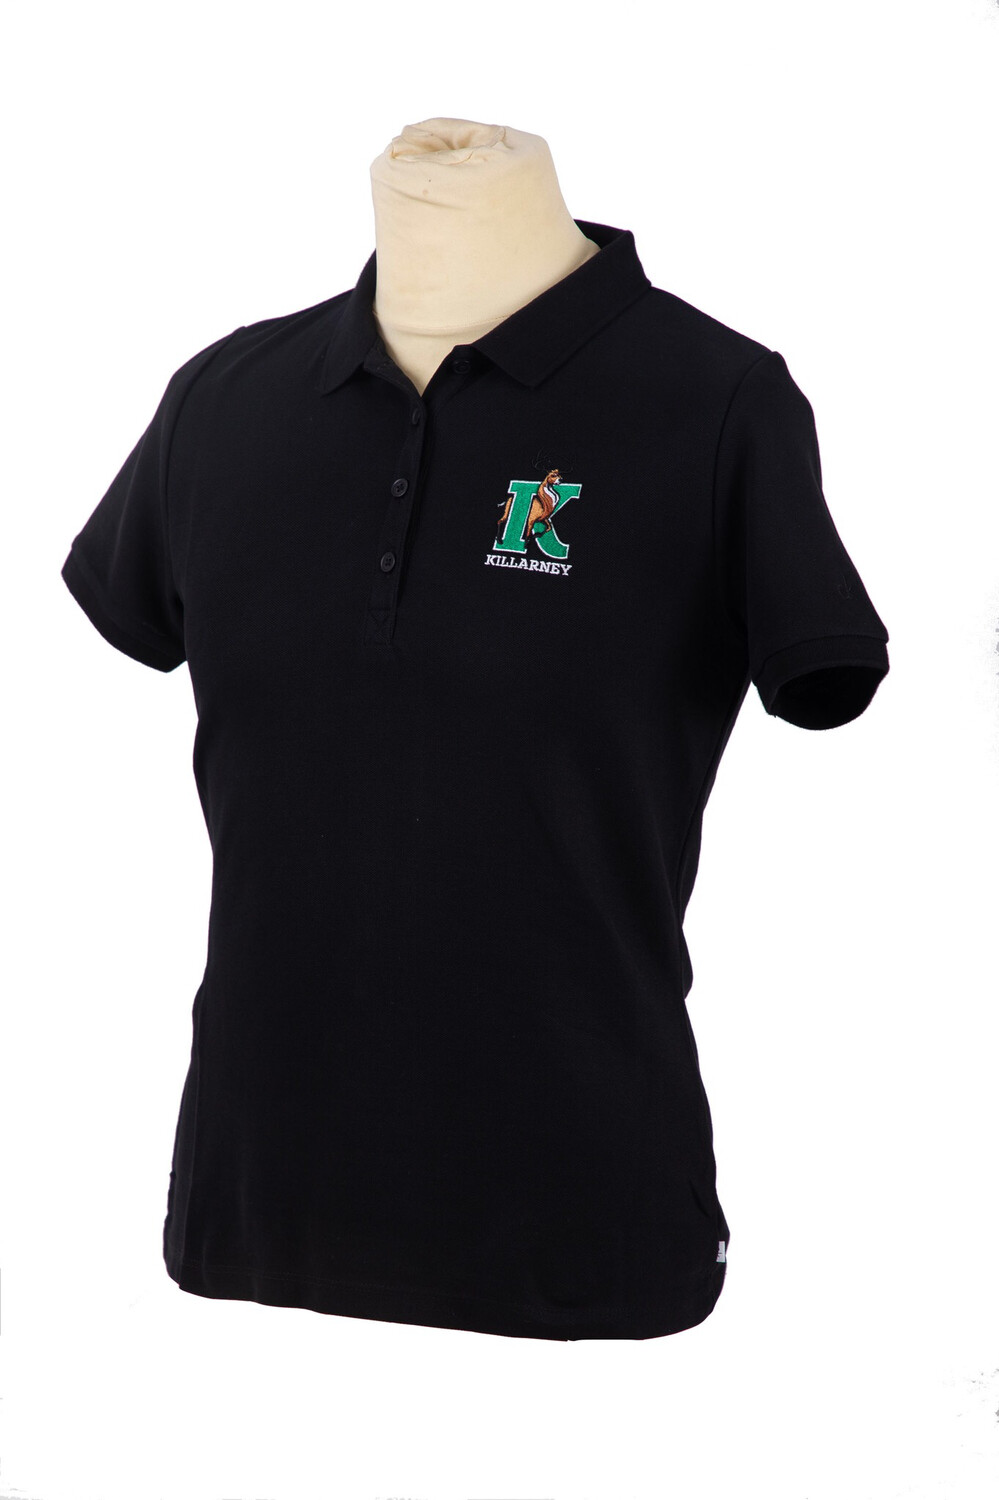 Ladies Killarney Crested Shirt